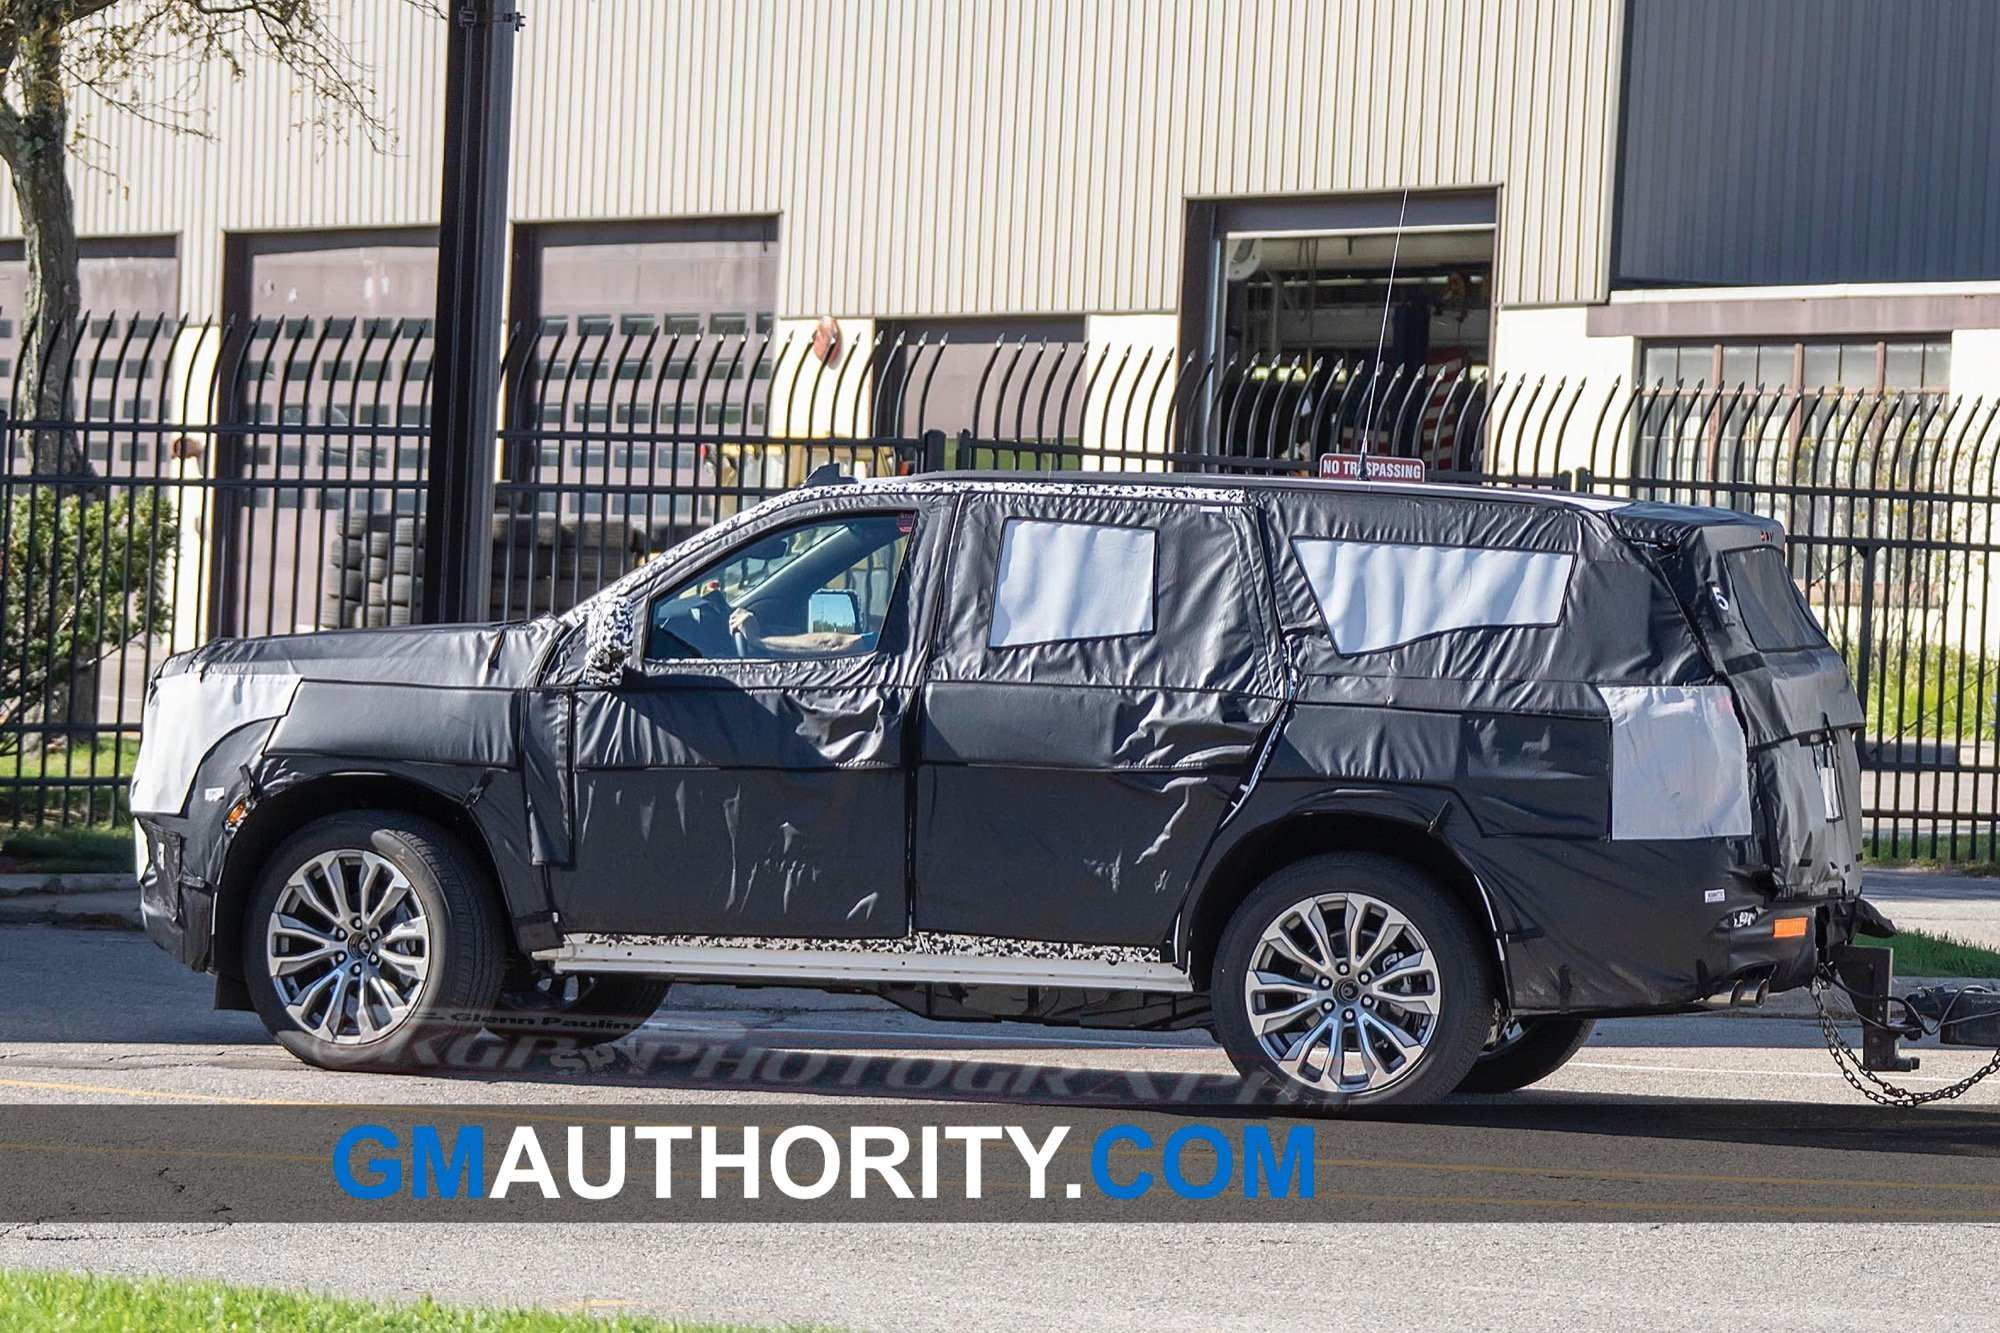 89 Great New Gmc Yukon Design 2020 2 Configurations for New Gmc Yukon Design 2020 2